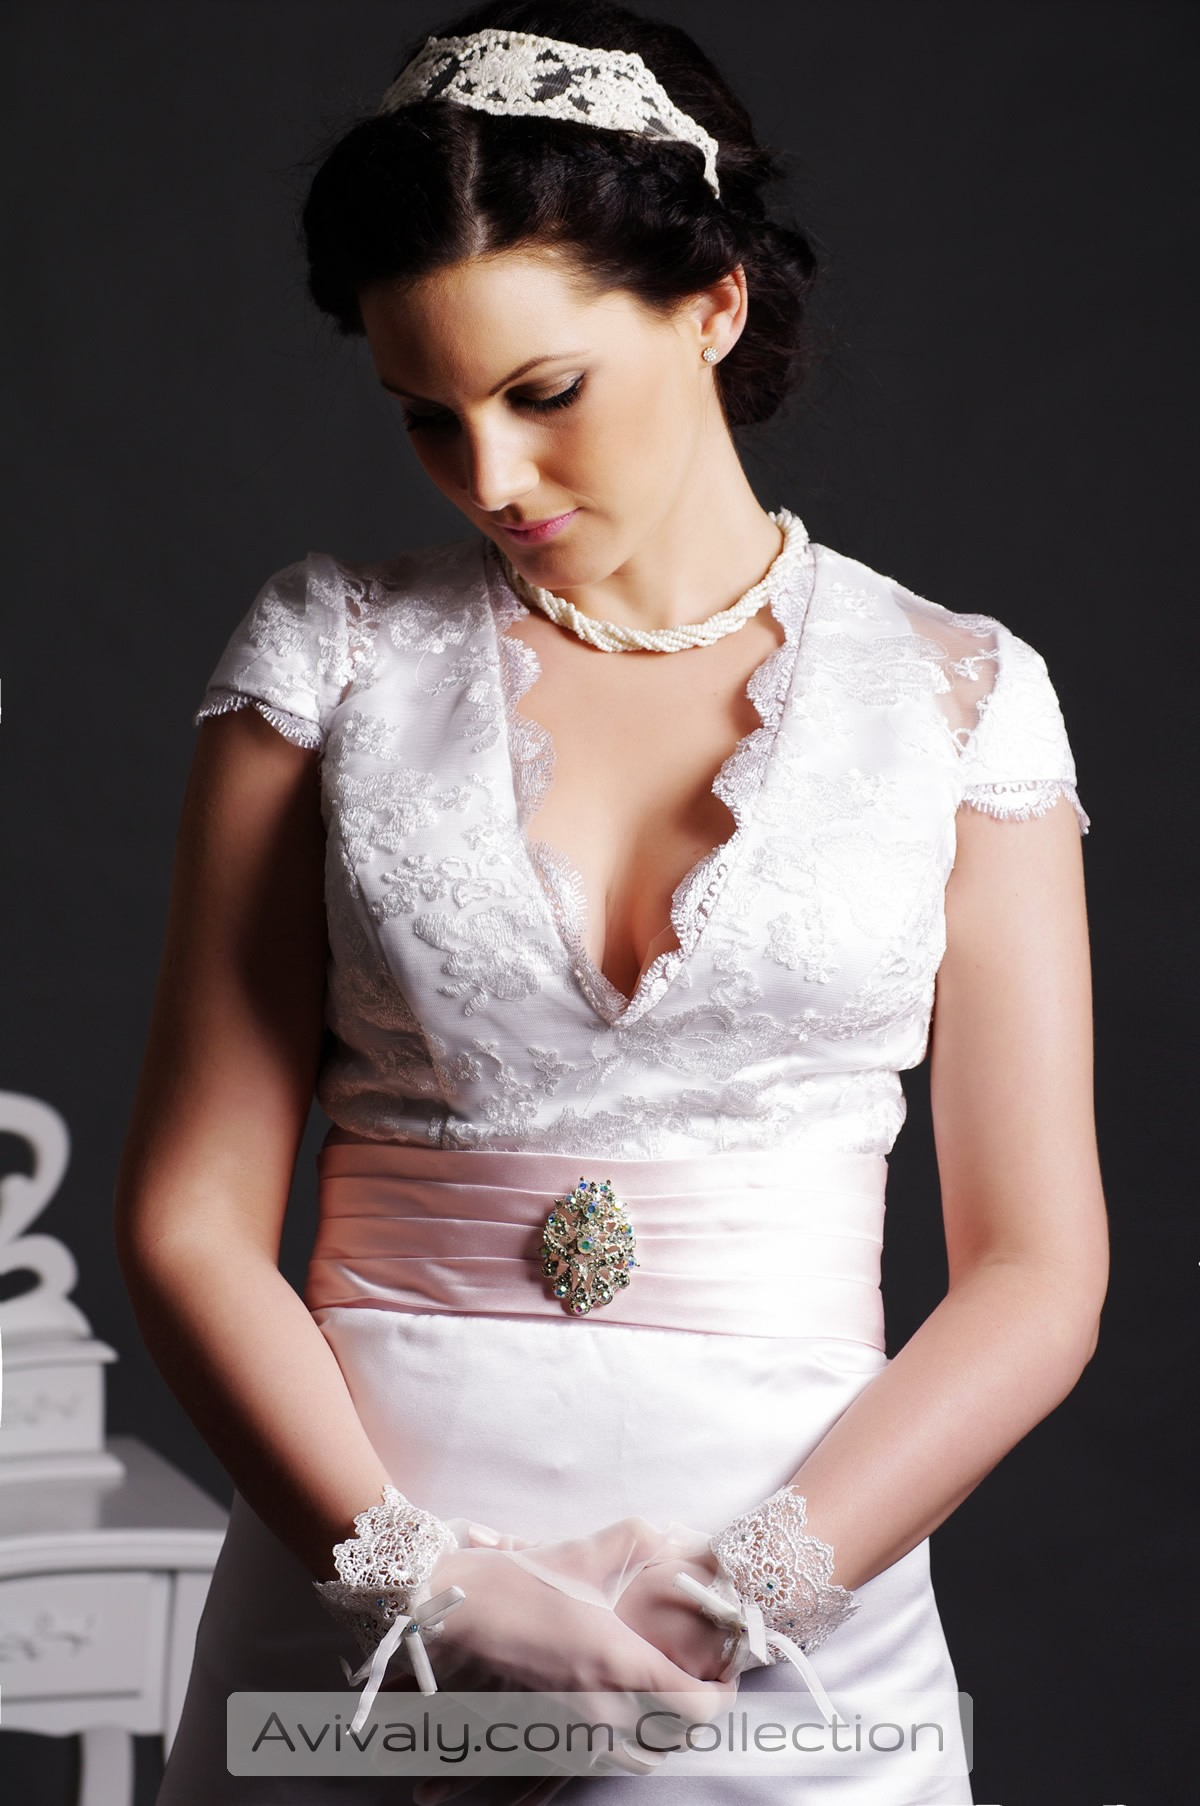 Ruby - Folded Pink Sash with Colorfully Beaded Embellishment on Front of Lace Bodice